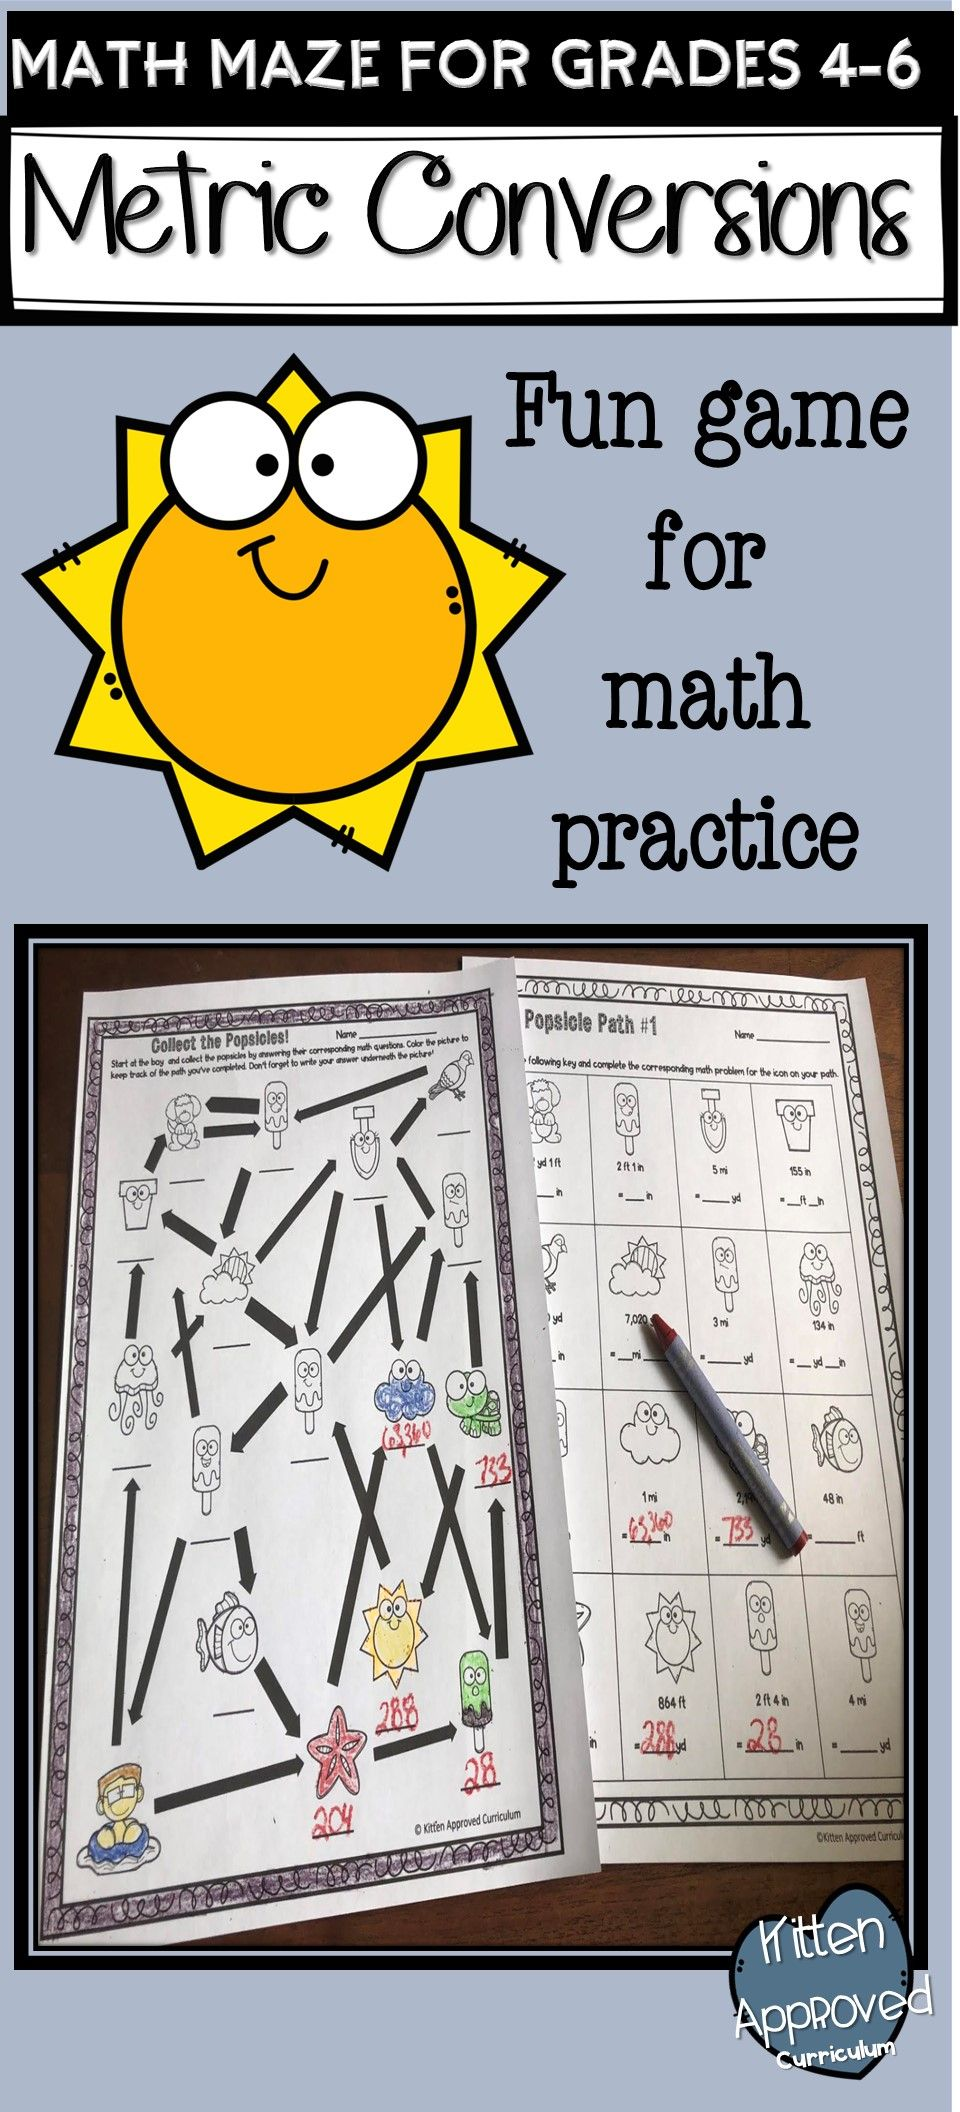 Convert Units Of Measurement Including Length Capacity And Weight With These Fun Worksheets Your 5th Grade Cla Math Maze Fun Worksheets 6th Grade Activities [ 2112 x 960 Pixel ]